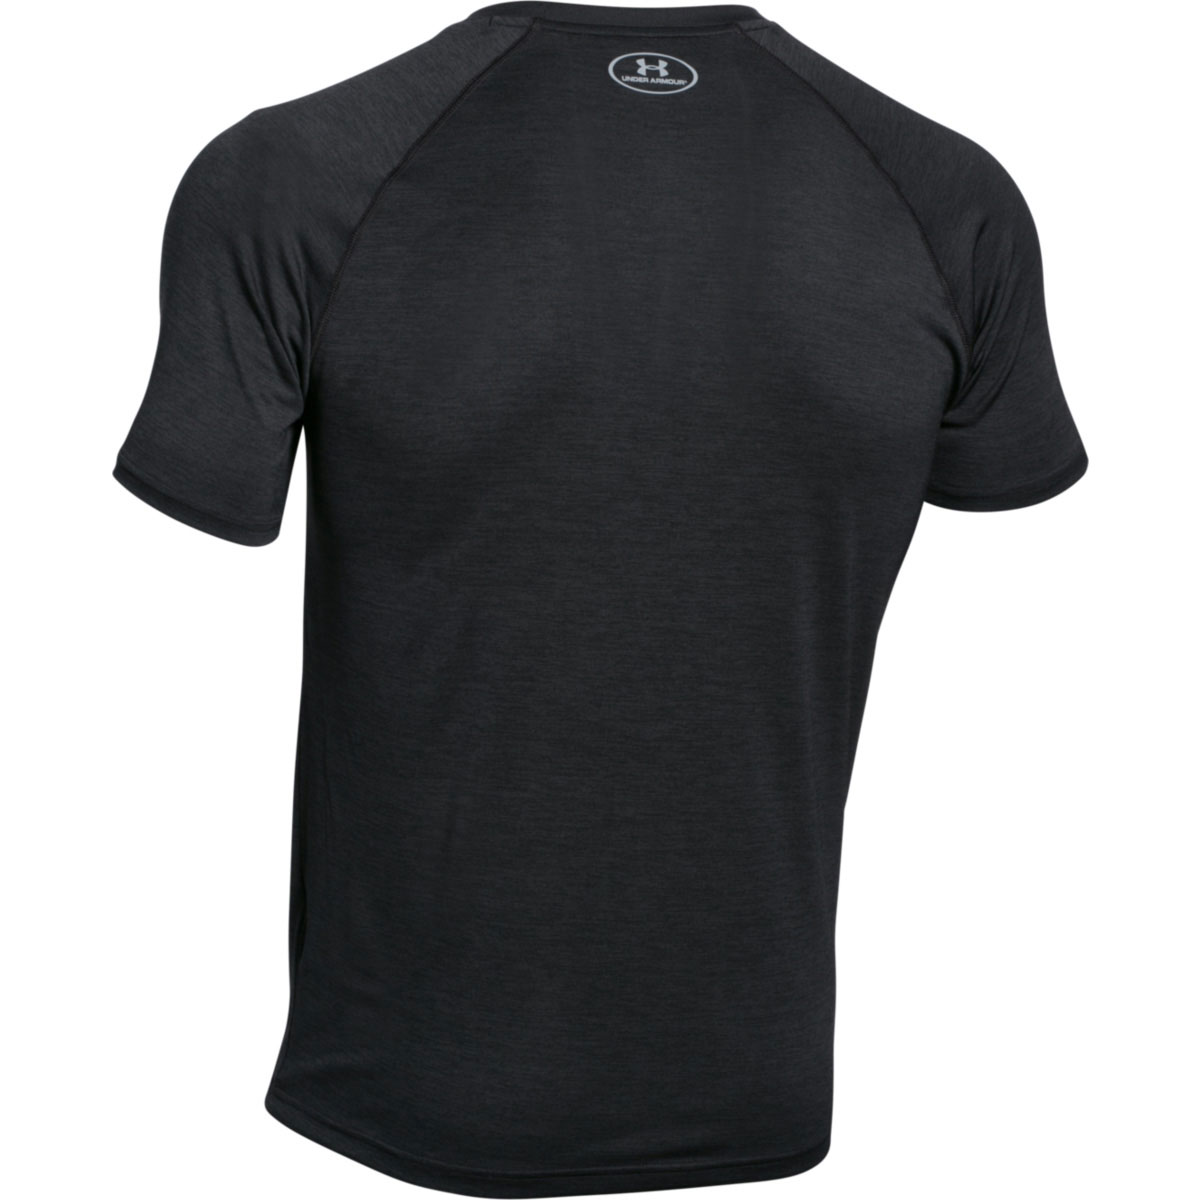 Under-Armour-Mens-UA-Tech-SS-T-Shirt-HeatGear-Training-31-OFF-RRP thumbnail 17